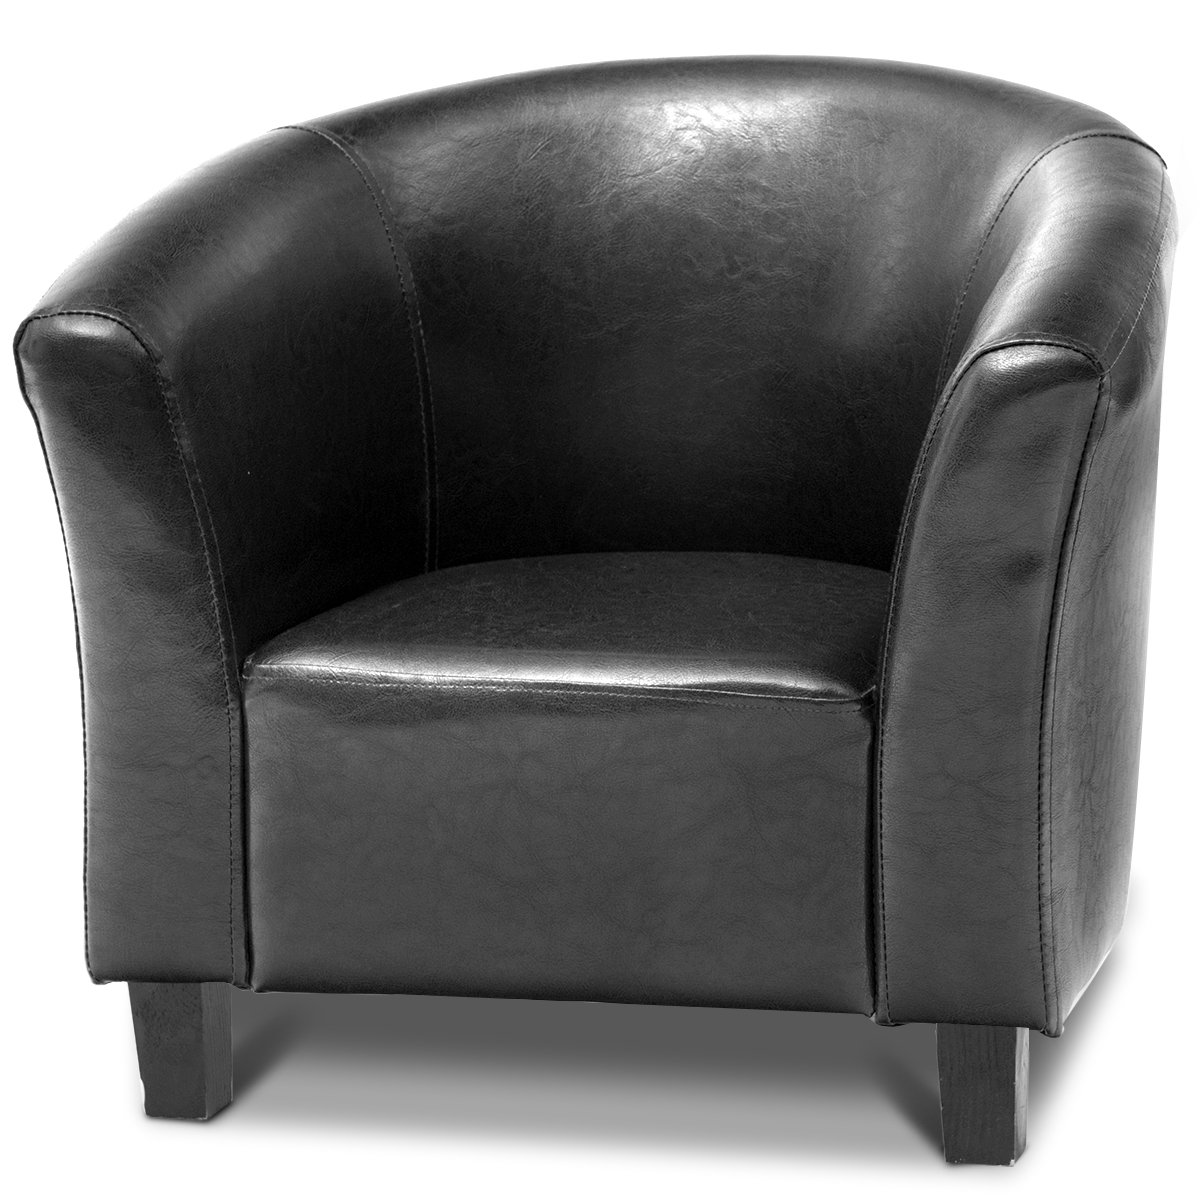 Costzon Kids Sofa Tub Chair Couch Children Living Room Toddler Furniture (PU Leather, Black) by Costzon (Image #2)